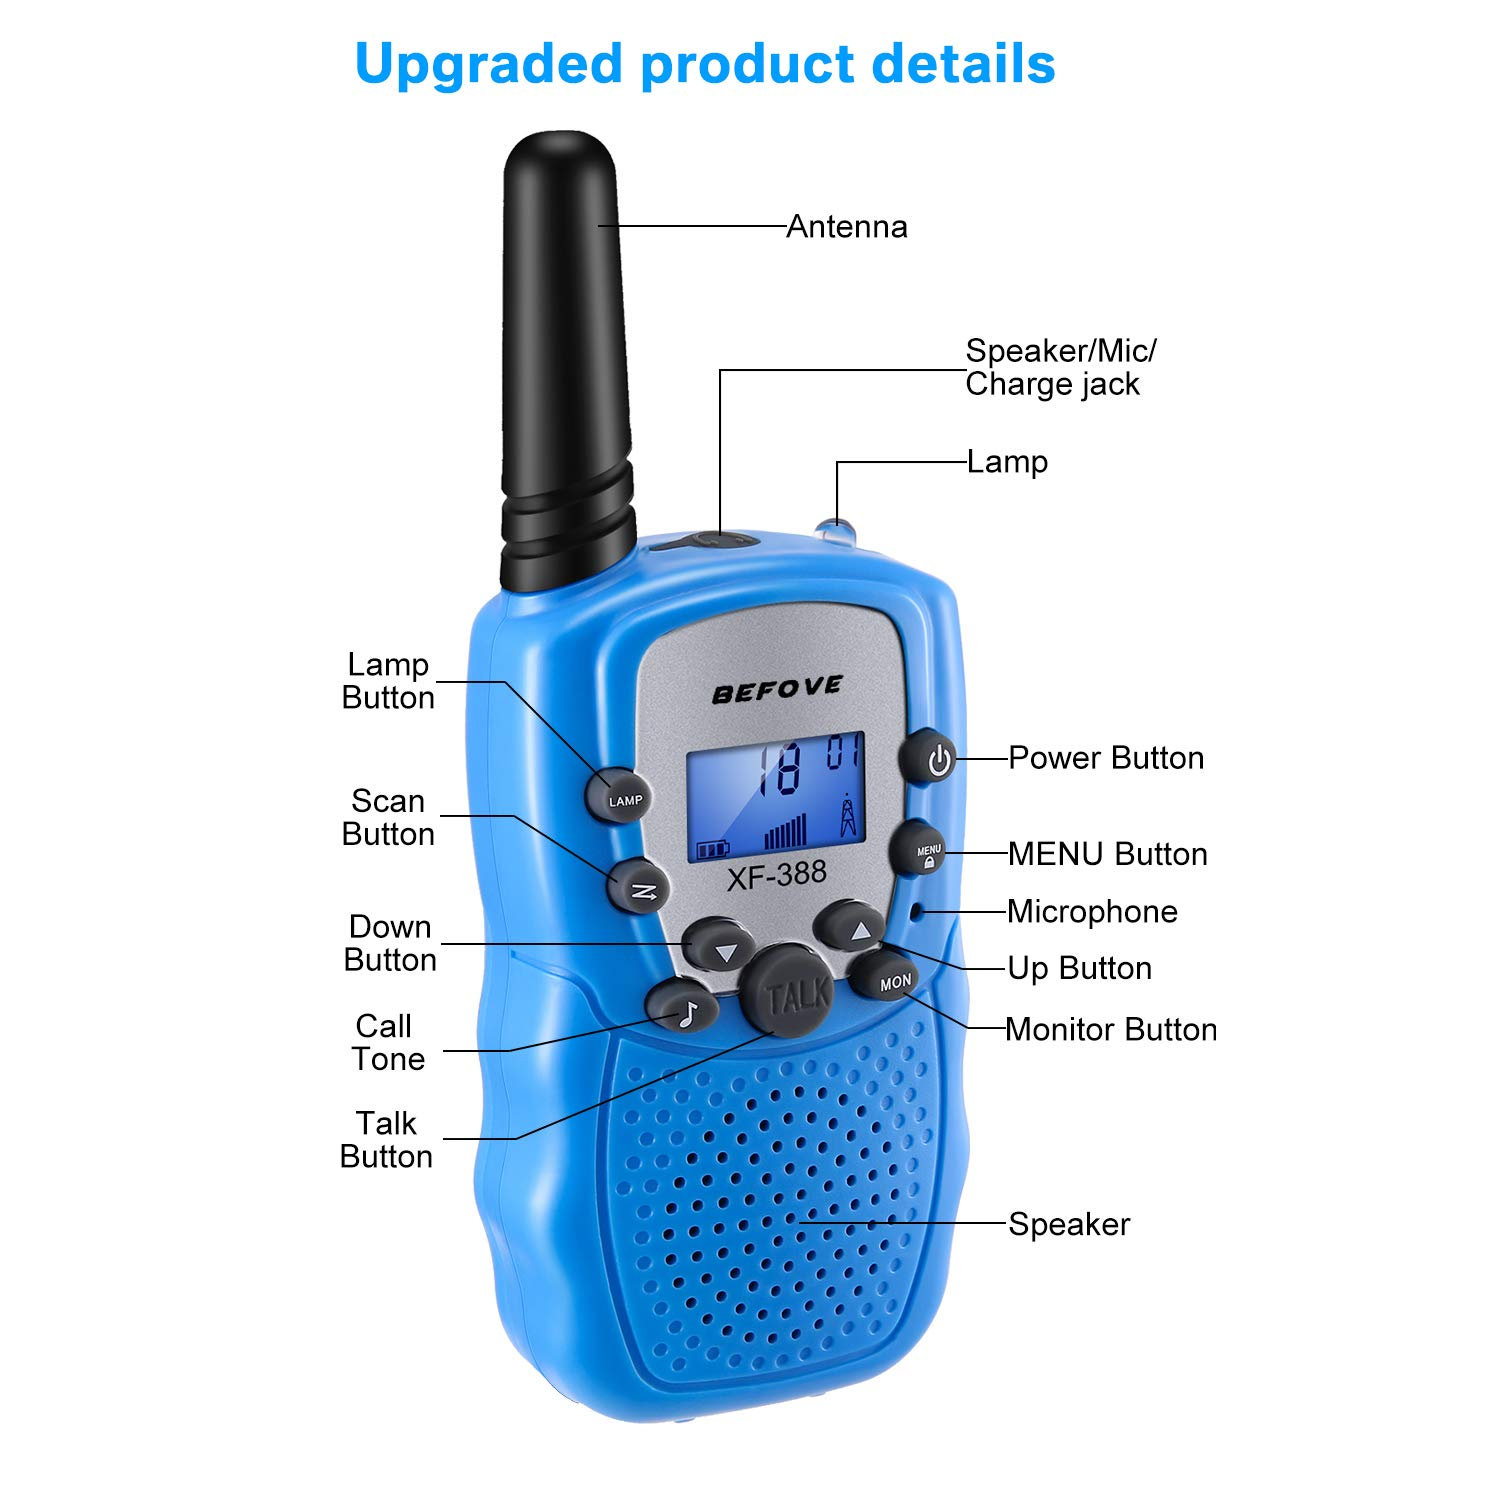 Befove Walkie Talkies, 3 x Walkie Talkie Kids 22 Channel Handheld FRS Transceiver Two Way Radios Long Range Walky Talky for Kids Adults, Camping Hiking Outdoor Use with Straps by Befove (Image #4)